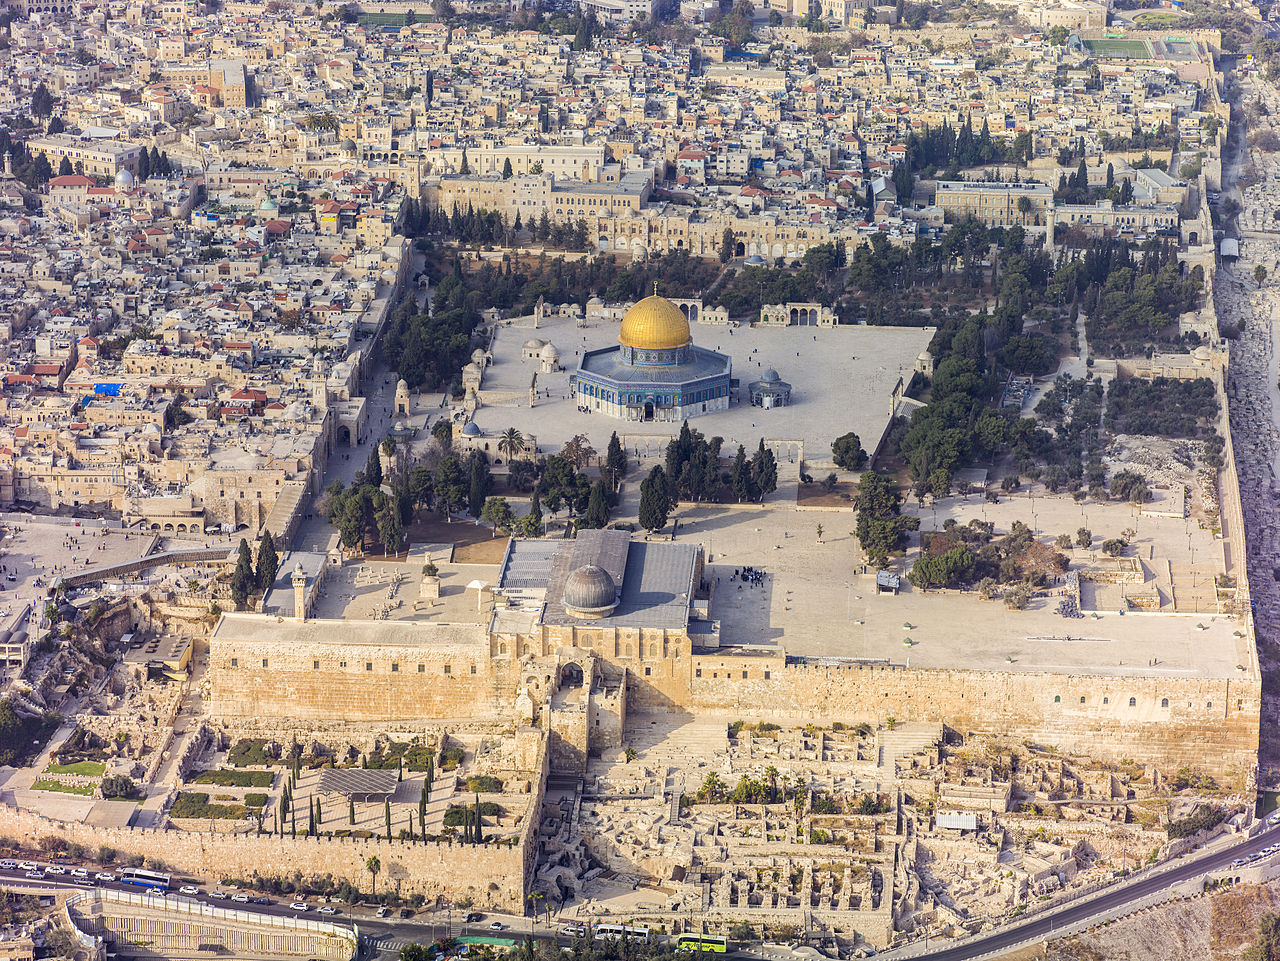 Dome of the Rock-Temple Mount